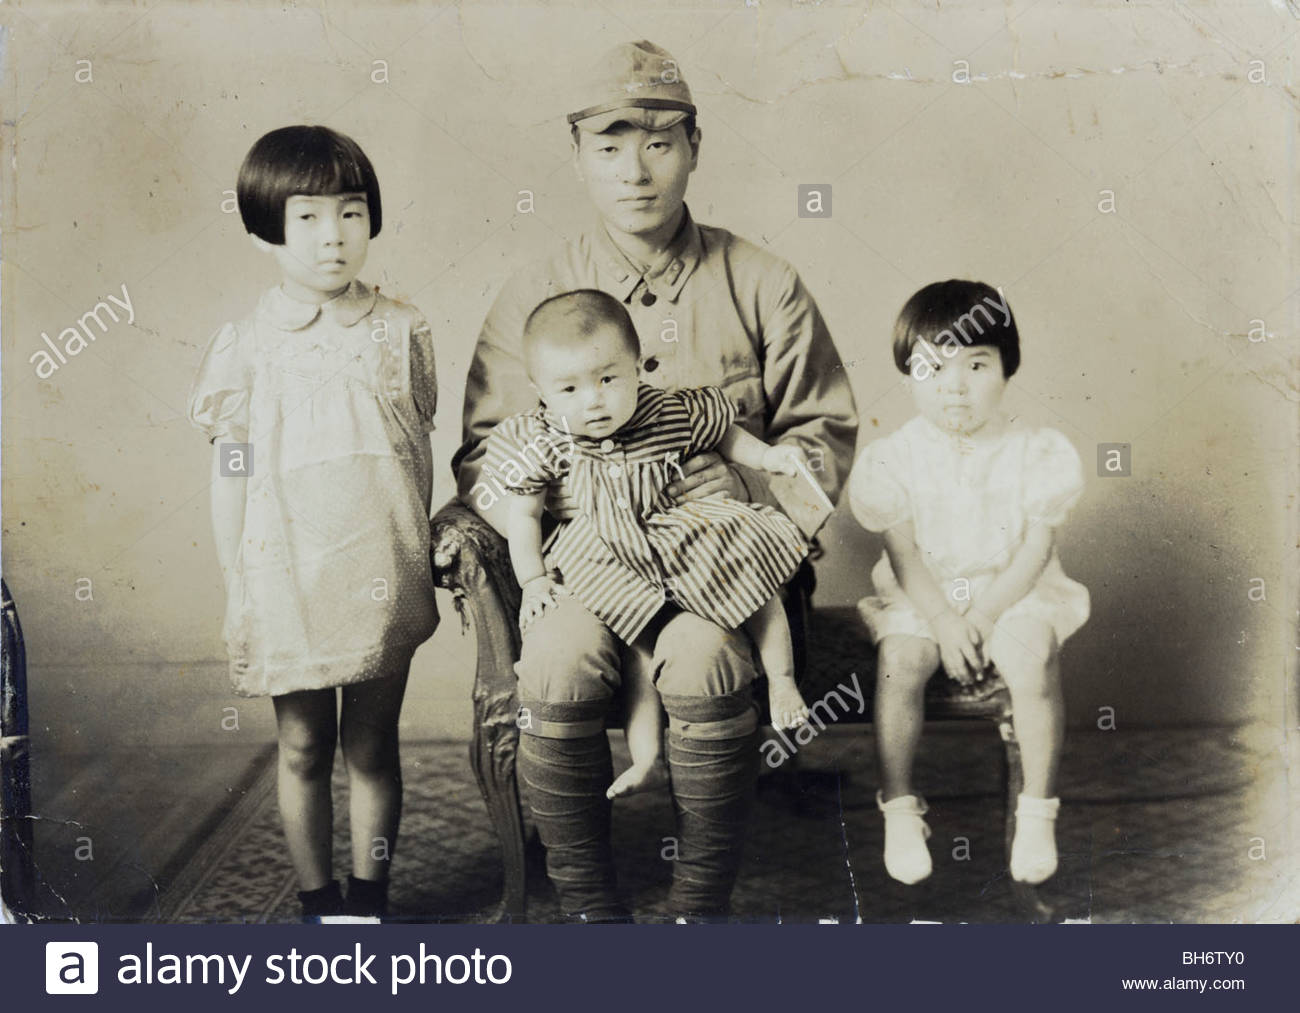 Japanese Soldier 1940s Stock Photos & Japanese Soldier ...